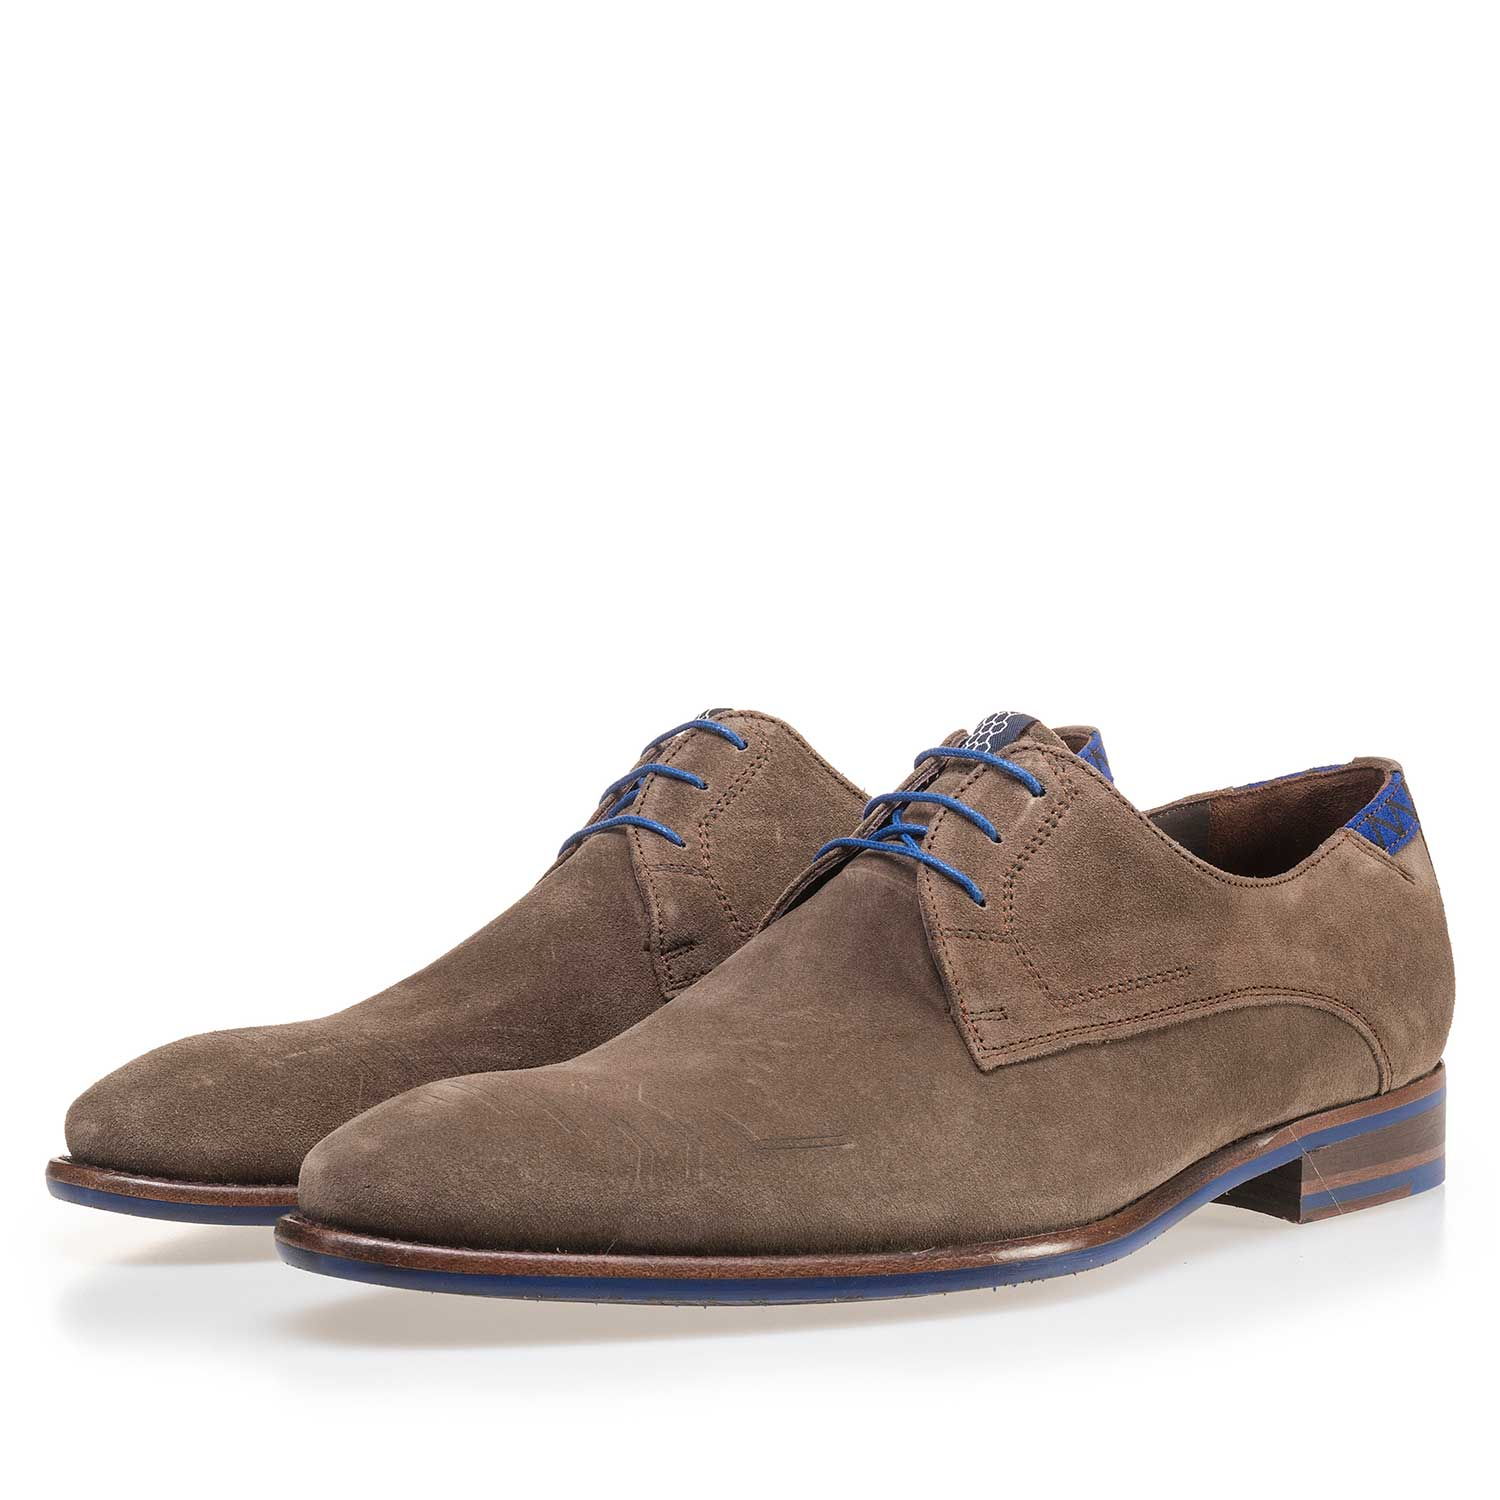 14092/02 - Taupe-coloured suede leather lace shoe